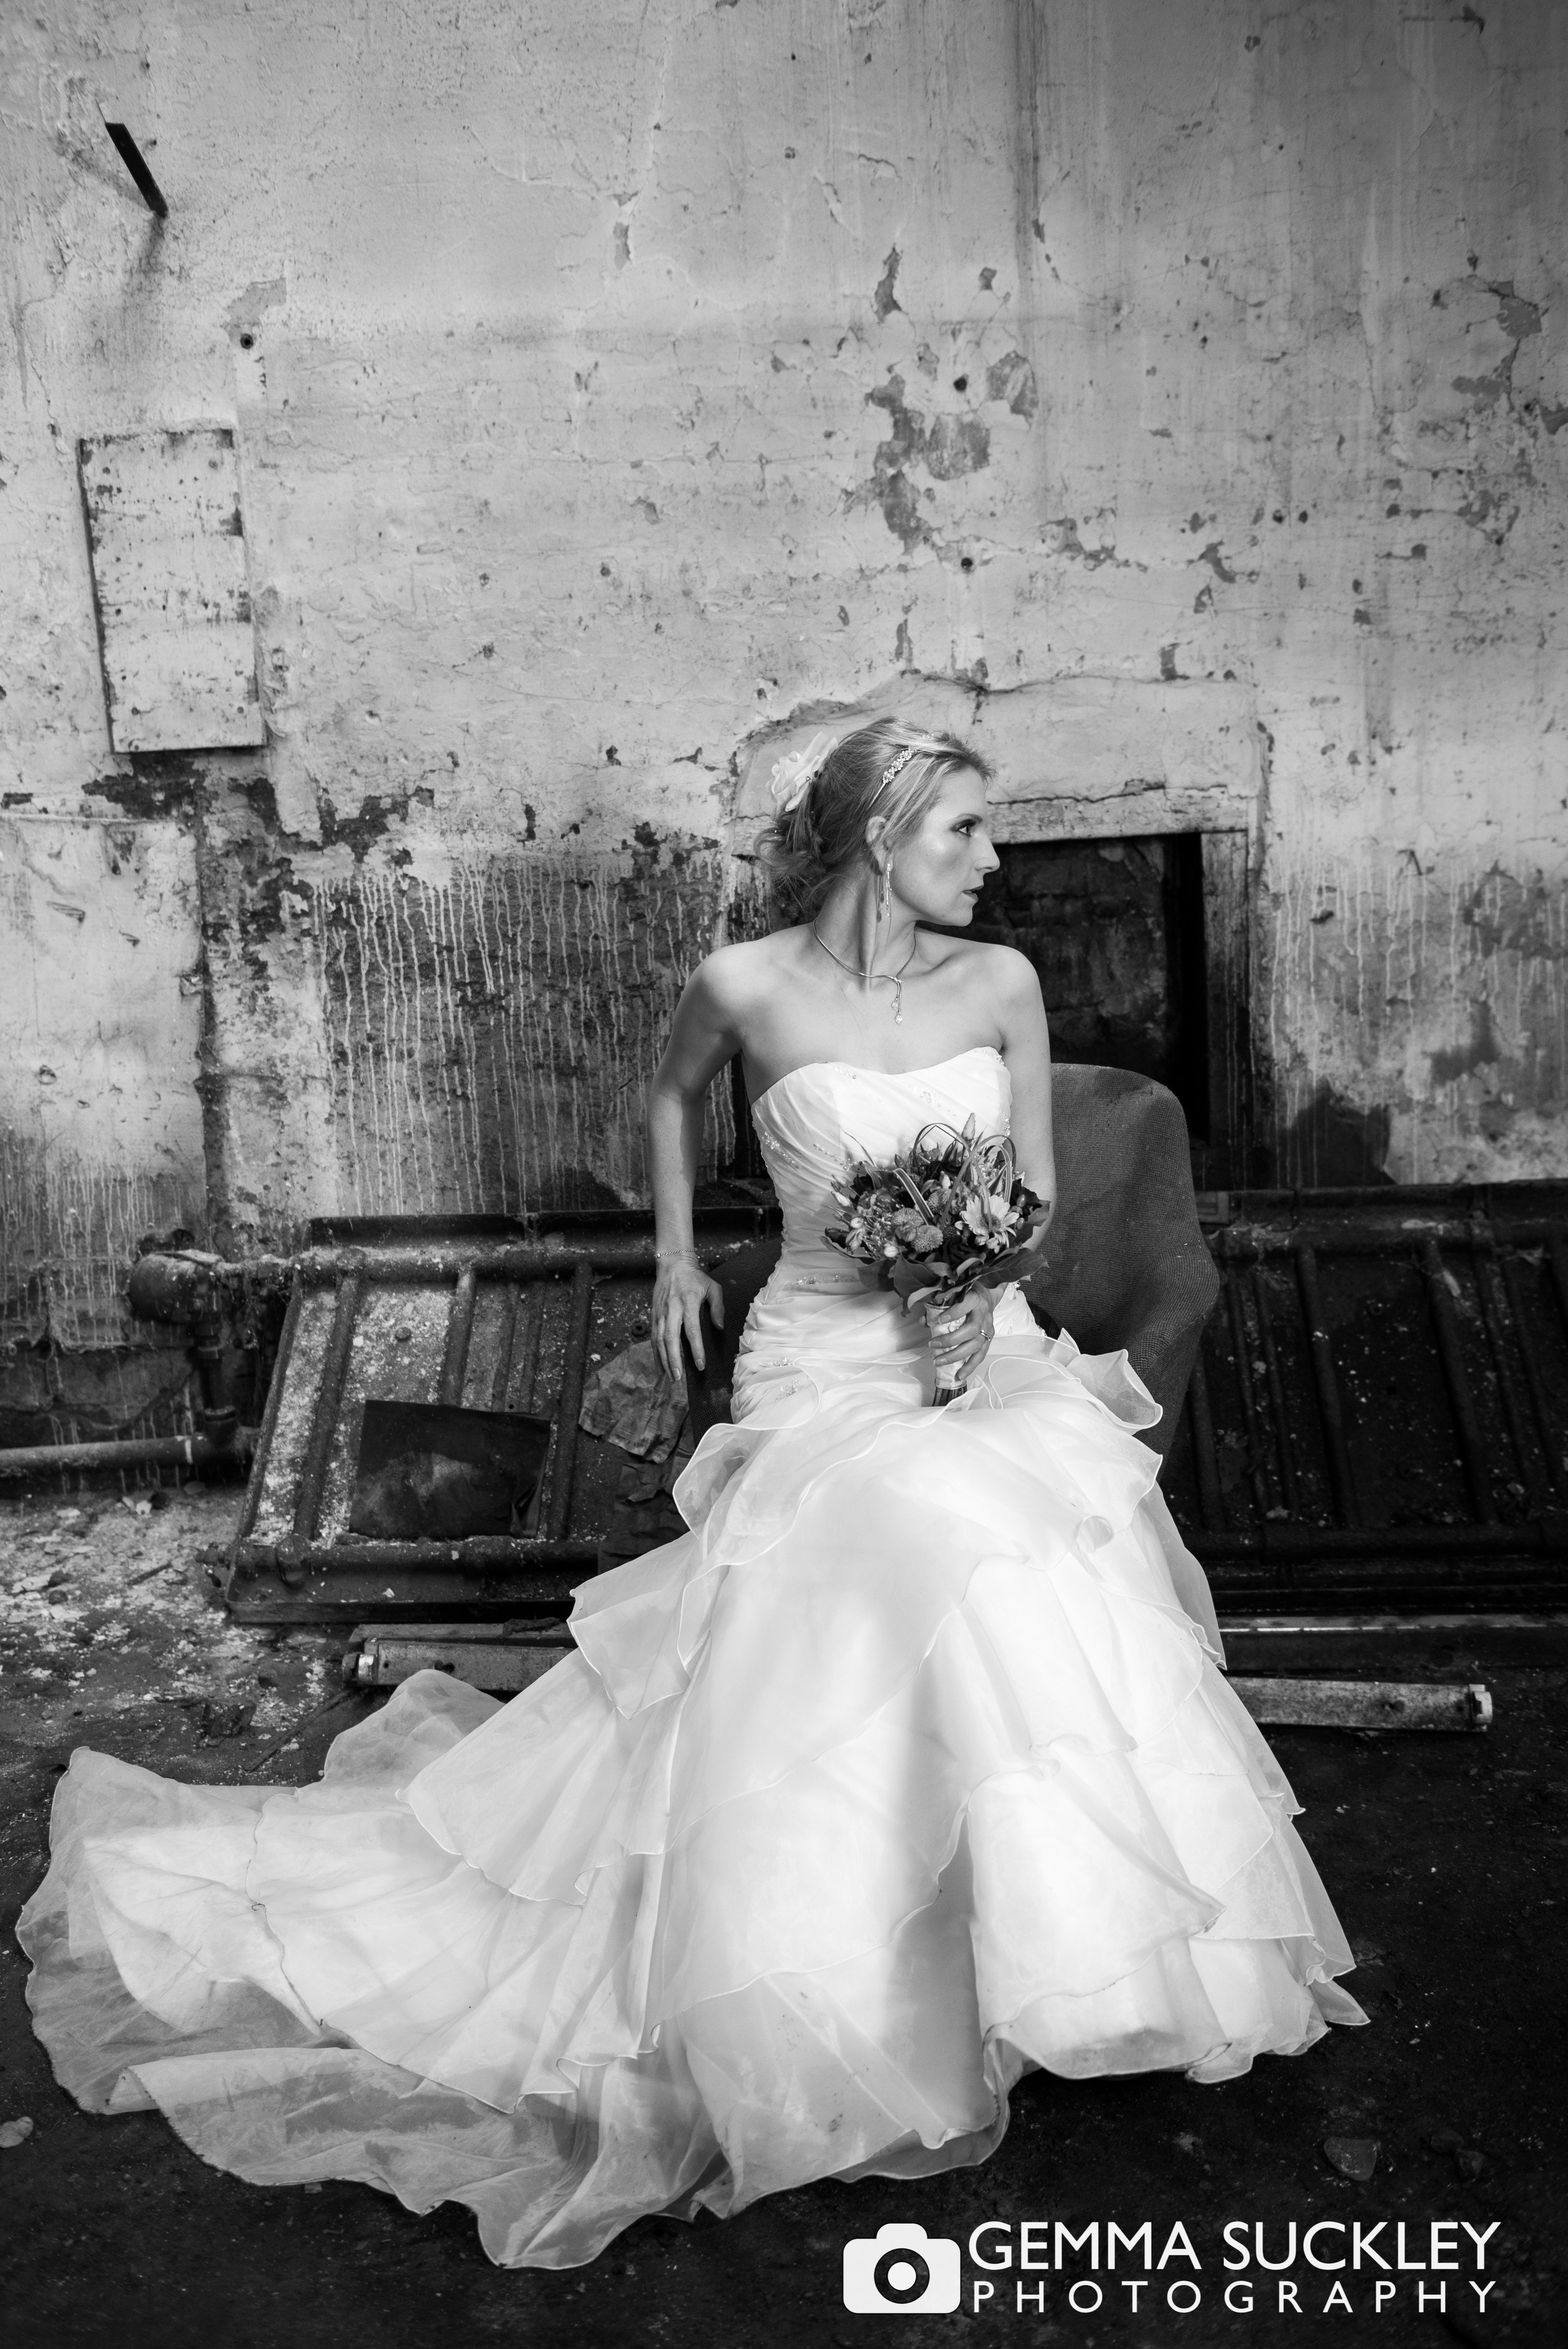 styled-bridal-photo-shoot.jpg